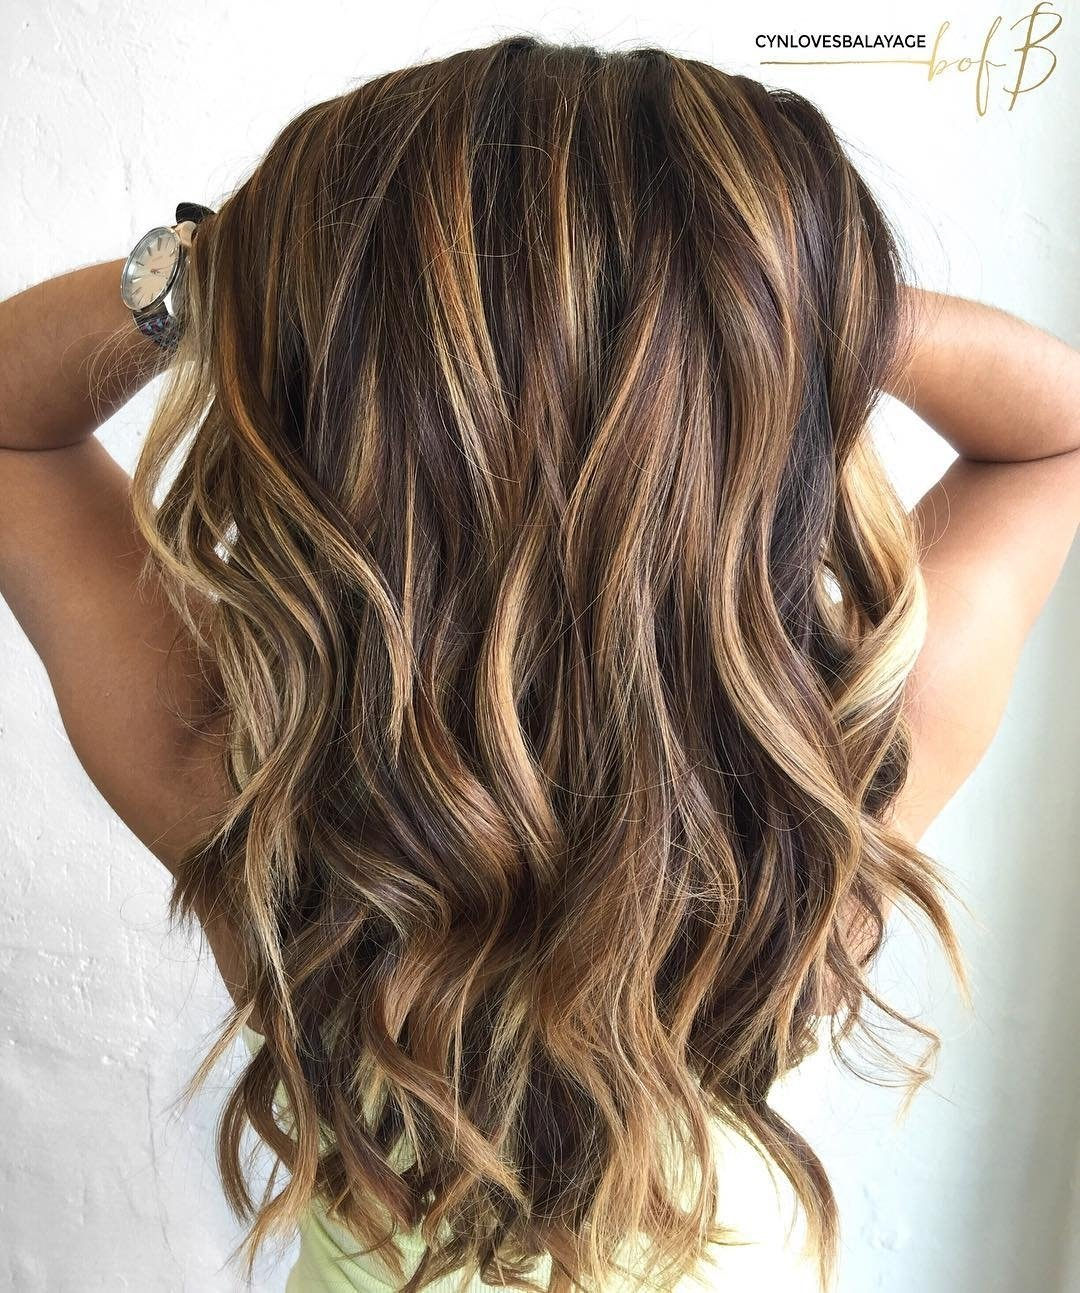 10 Stunning Hair Color With Highlights Ideas looks with caramel highlights on brown and dark brown hair 5 2020